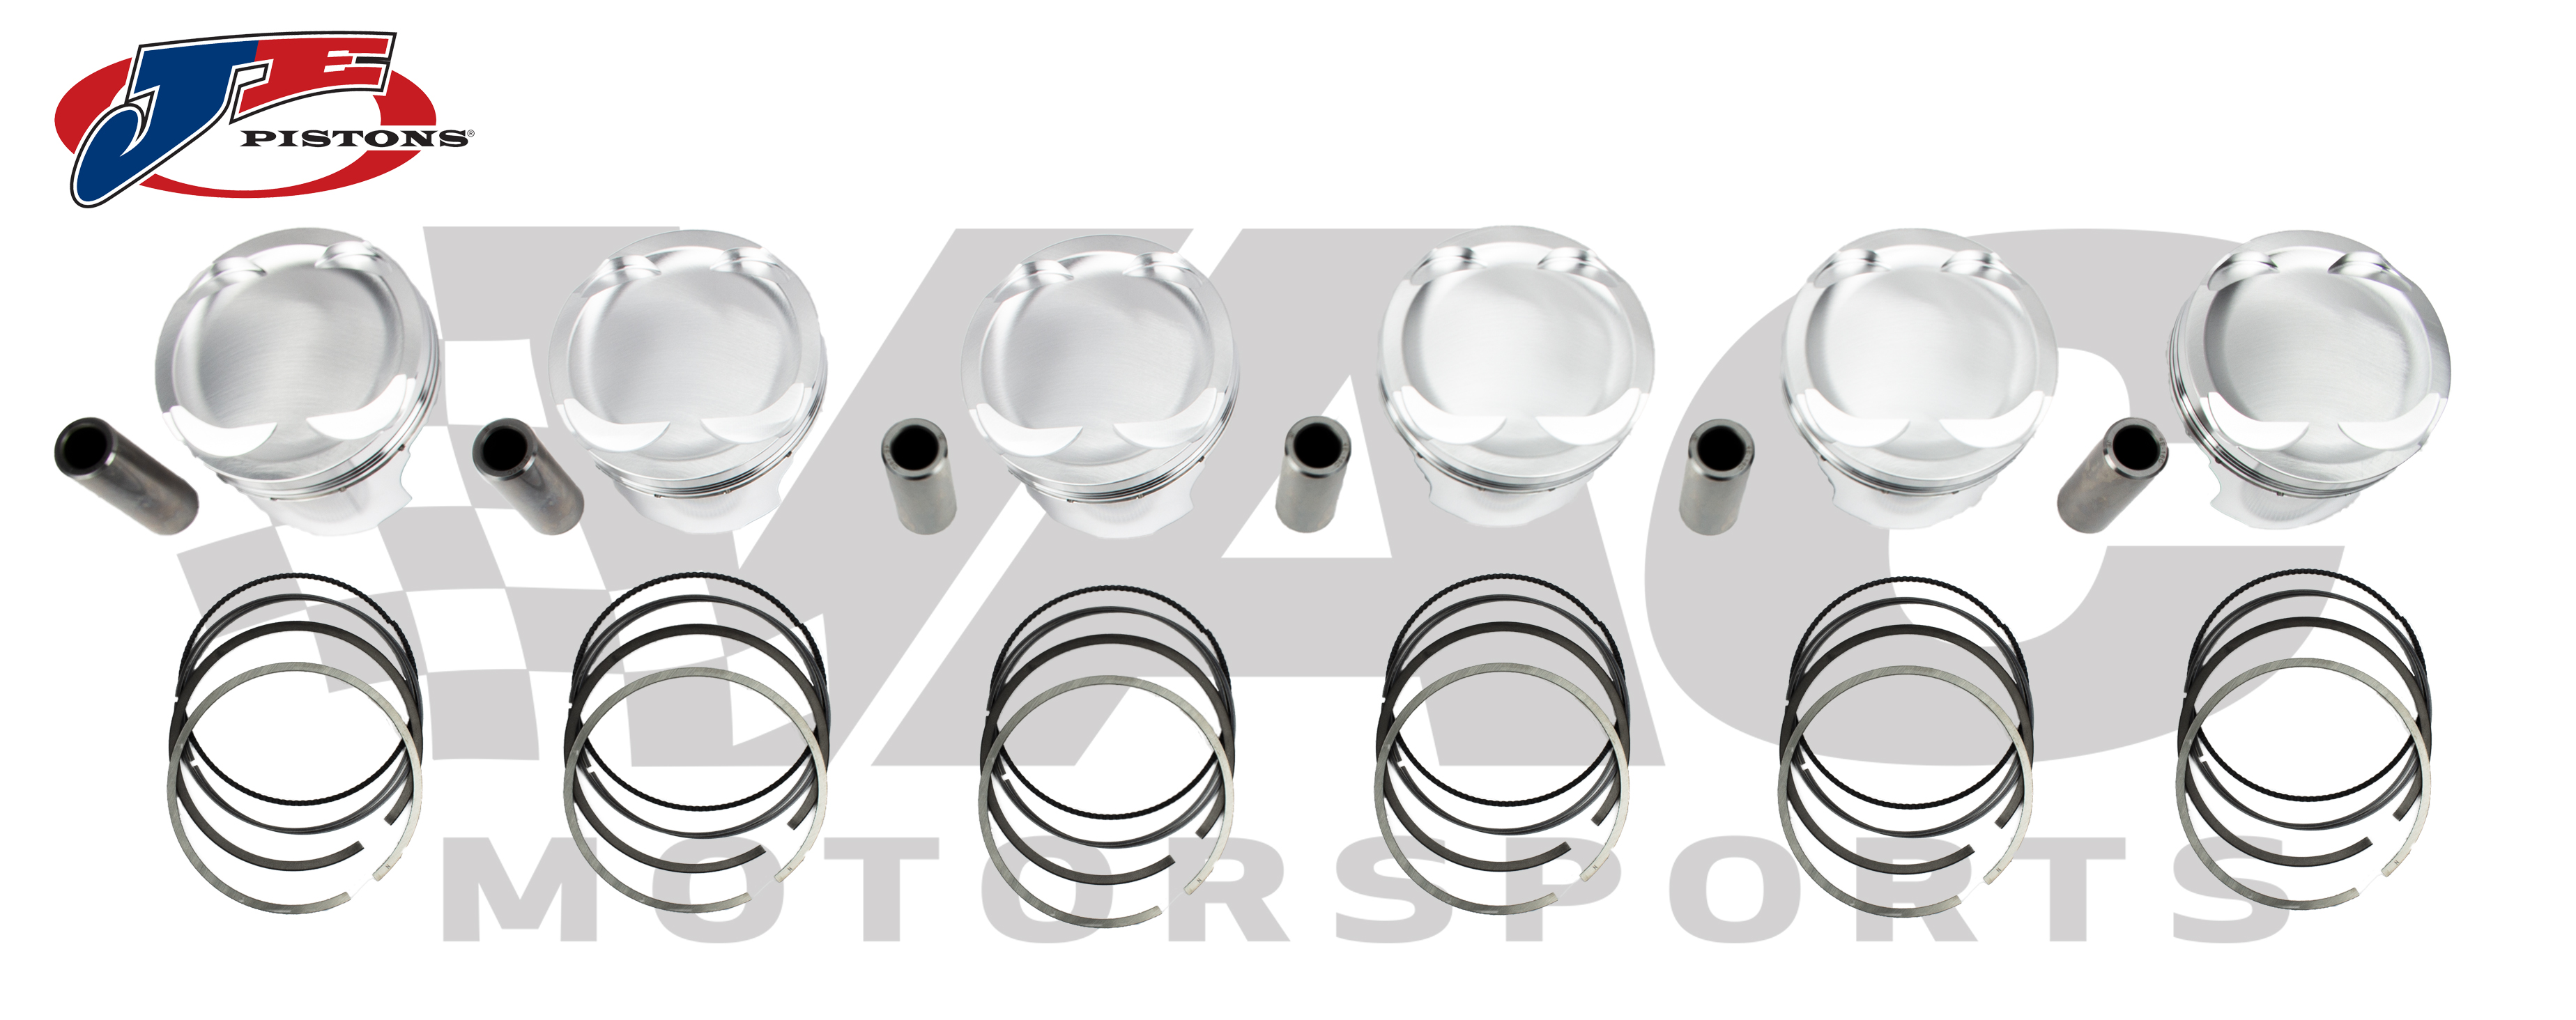 JE Pistons Forged Piston Set (BMW S50B32 Euro, 3.2L) THUMBNAIL